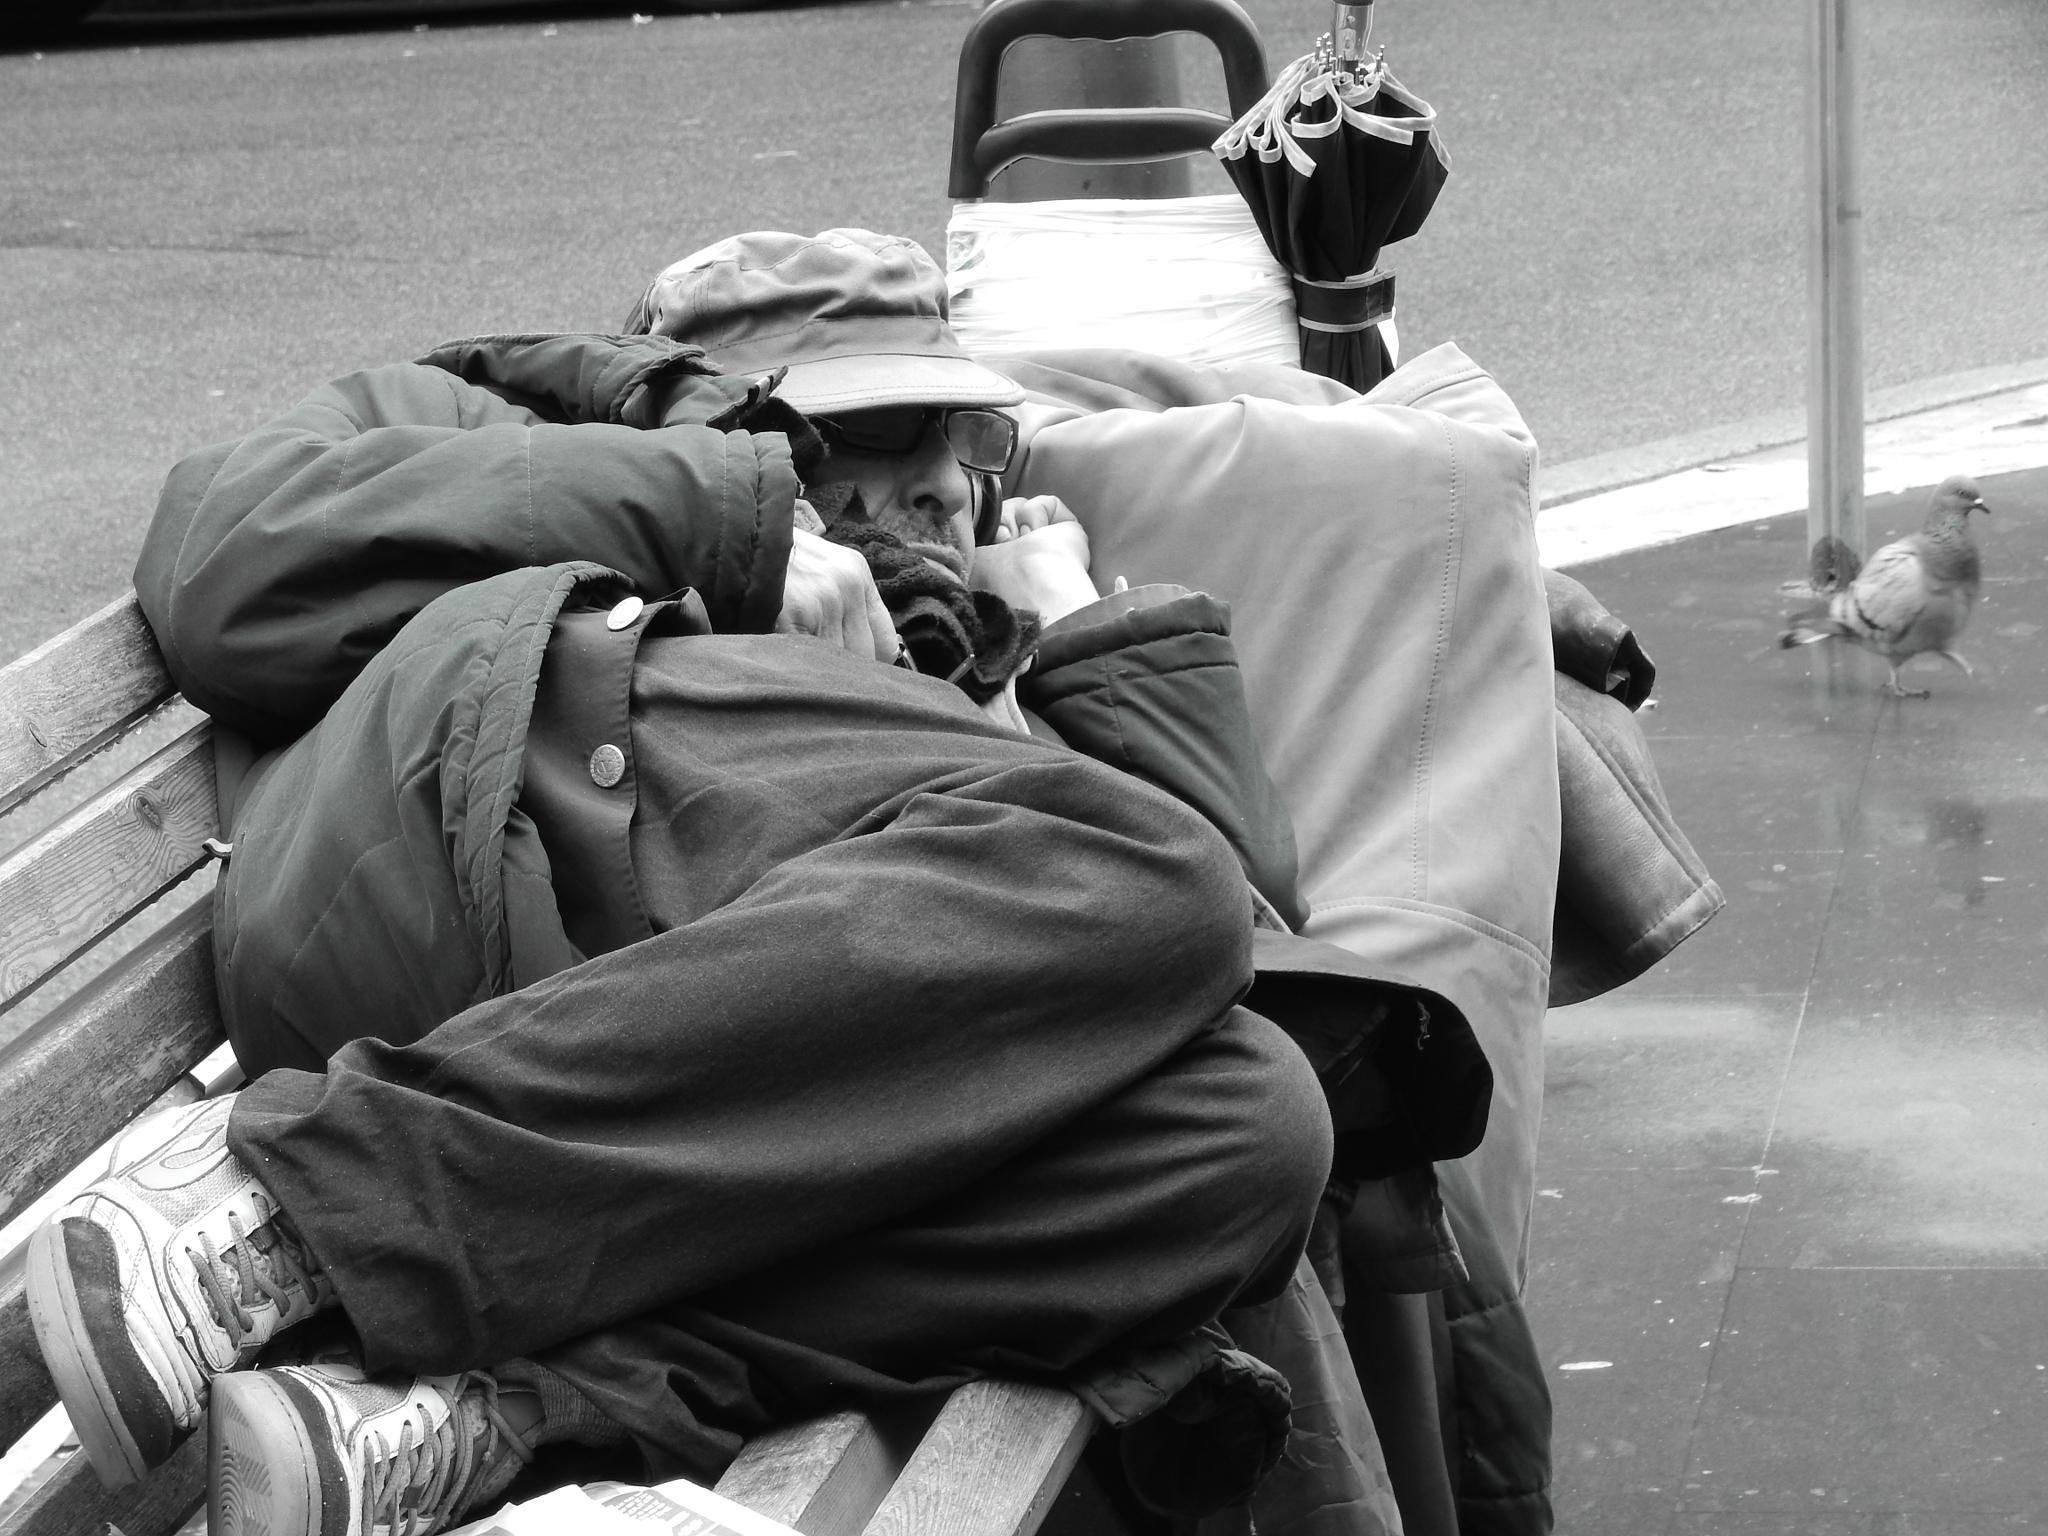 sleeping thin in the middle of the rain without think (4) by Juan Carlos Mendez (jcarlmendez@gmail.com)